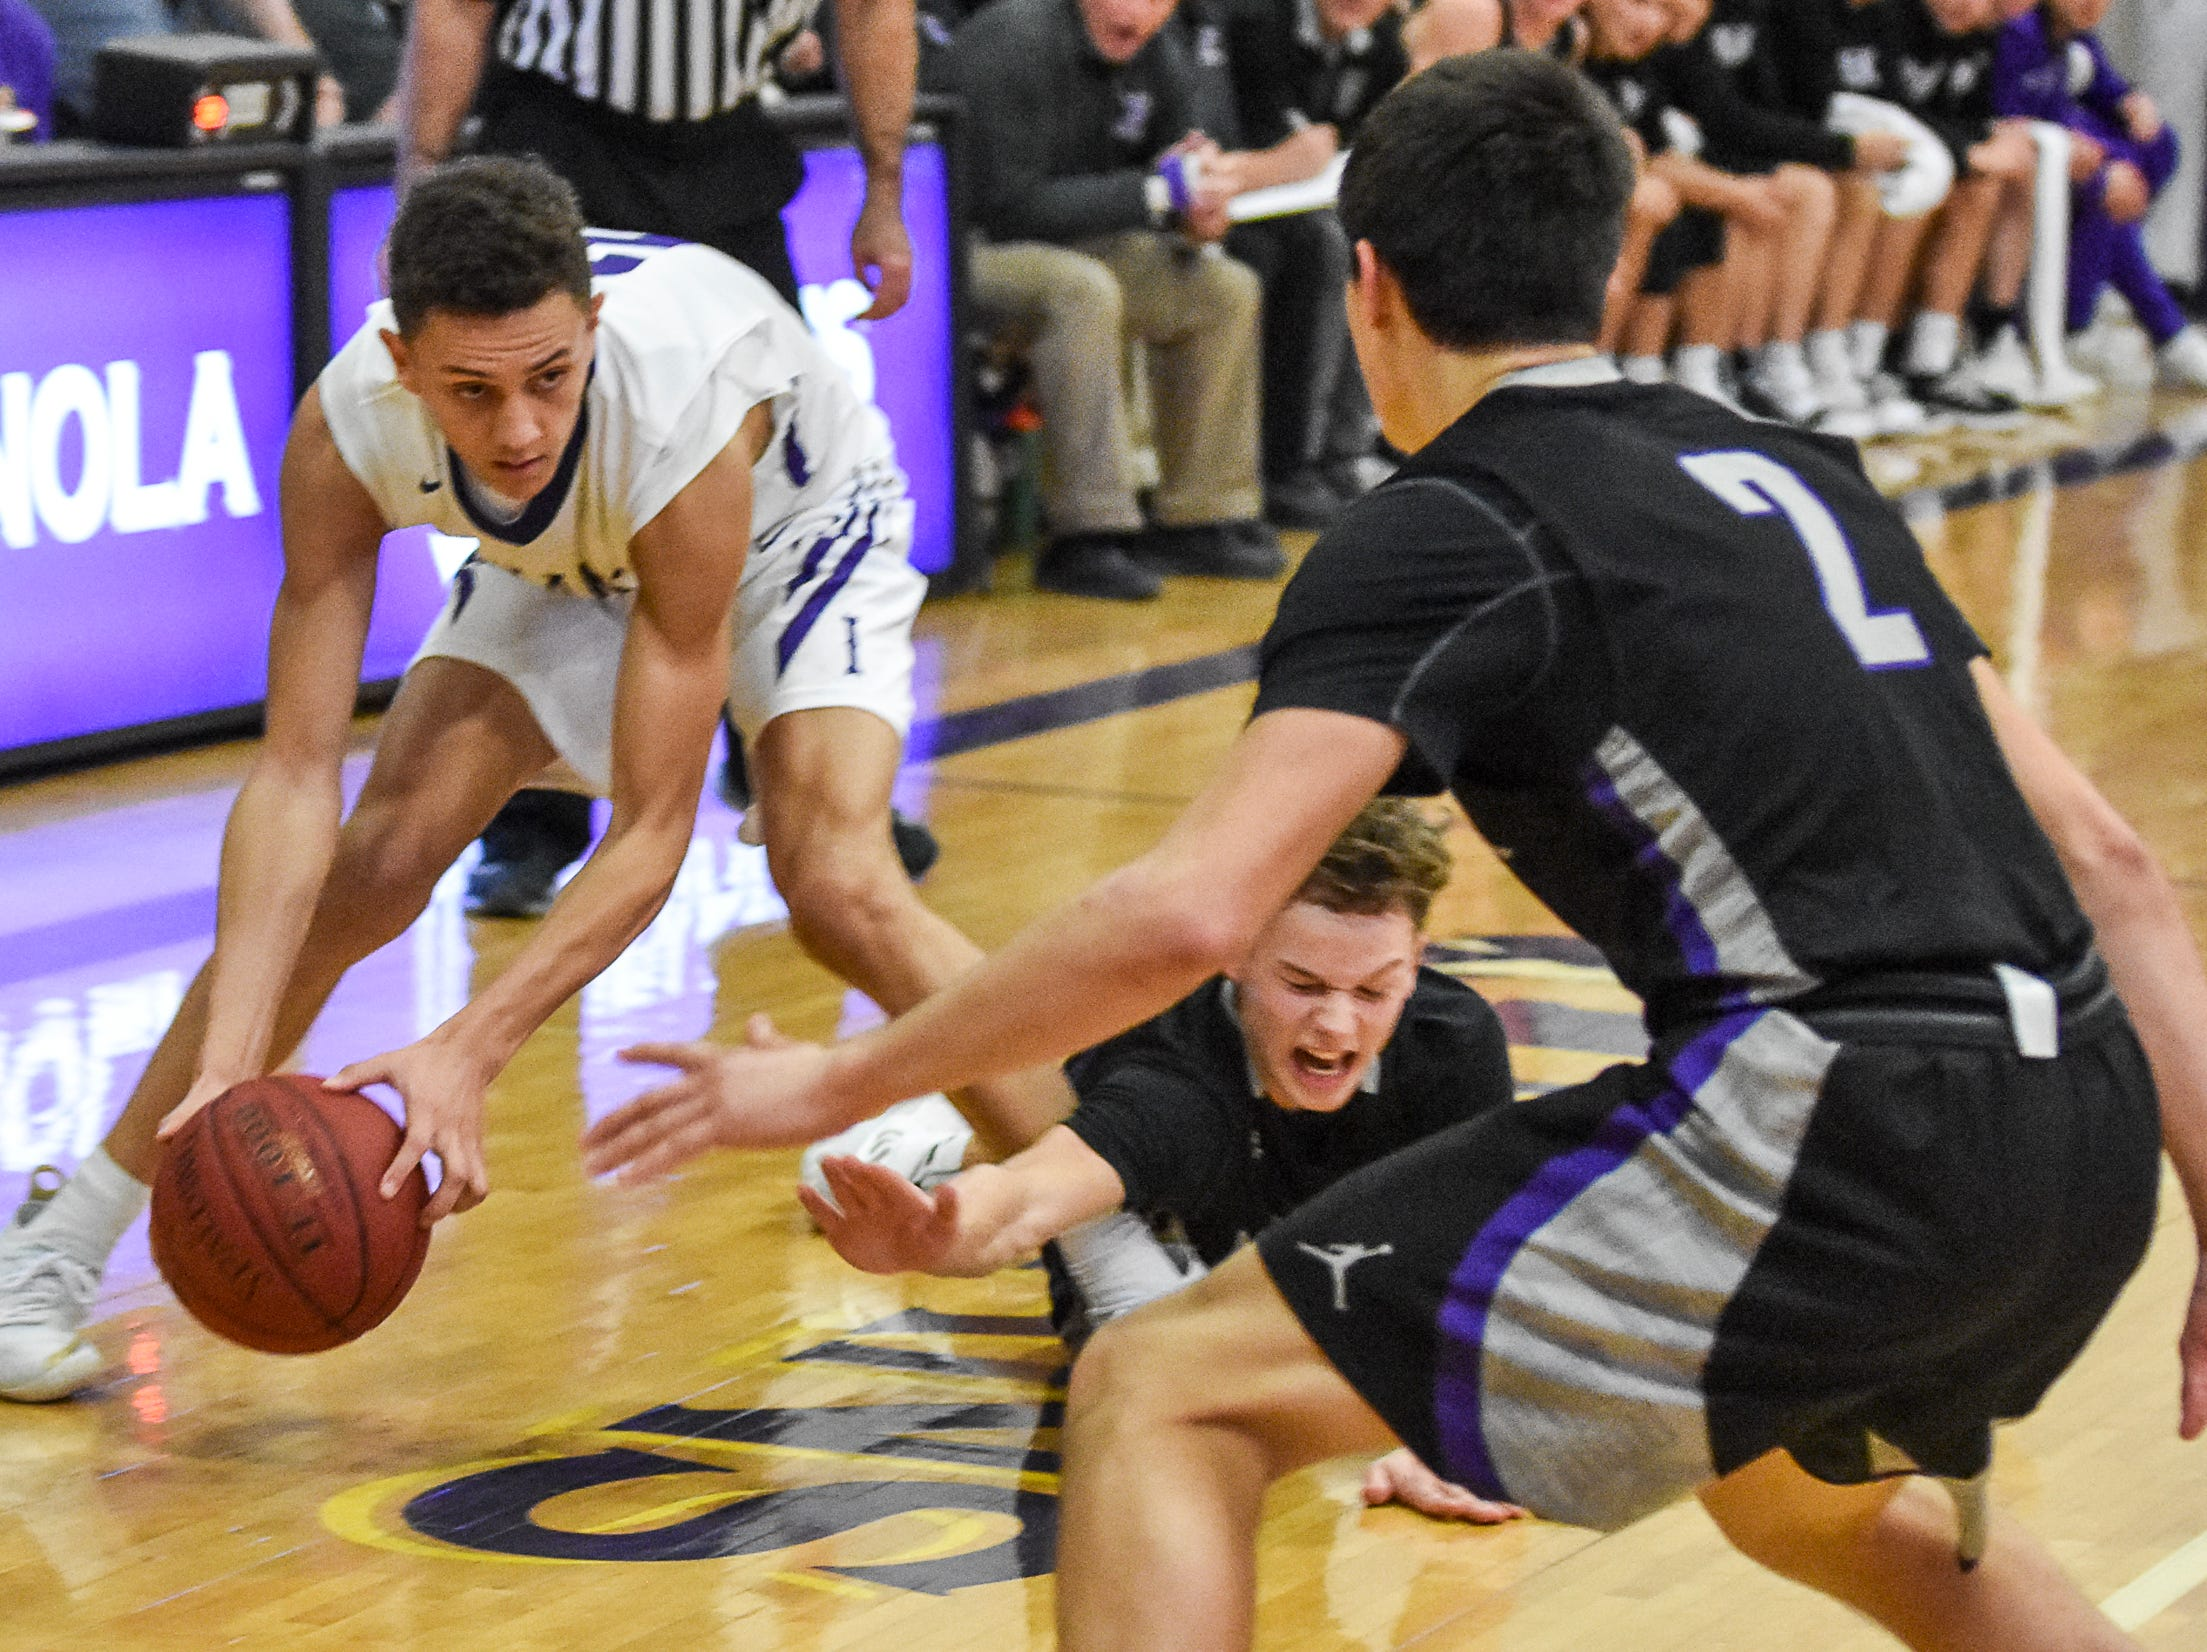 Indianola's Evan Gauger grabs a loose ball as Norwalk's Bowen Born goes to the floor. The Indianola boys slipped to 1-1 on the season with a 65-48 home loss to Norwalk on Nov. 30, 2018.